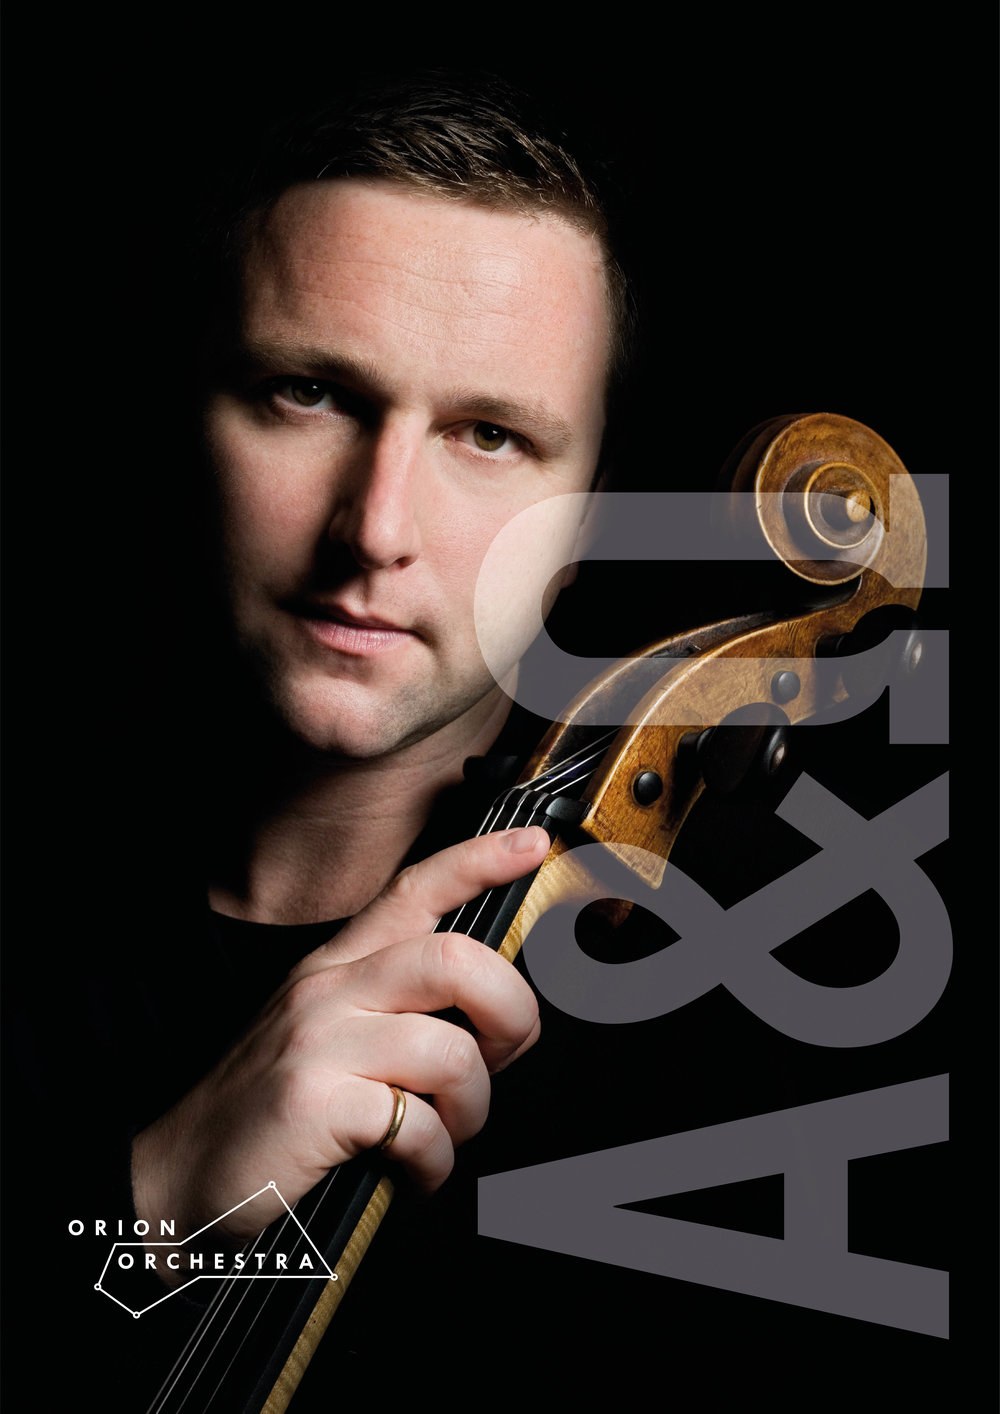 Alpha & Omega - 18th May 2018, Cadogan HallWagner Overture from Das LiebesverbotElgar Cello ConcertoWagner Prelude to ParsifalElgar Enigma VariationsToby Purser, conductorJamie Walton, cello